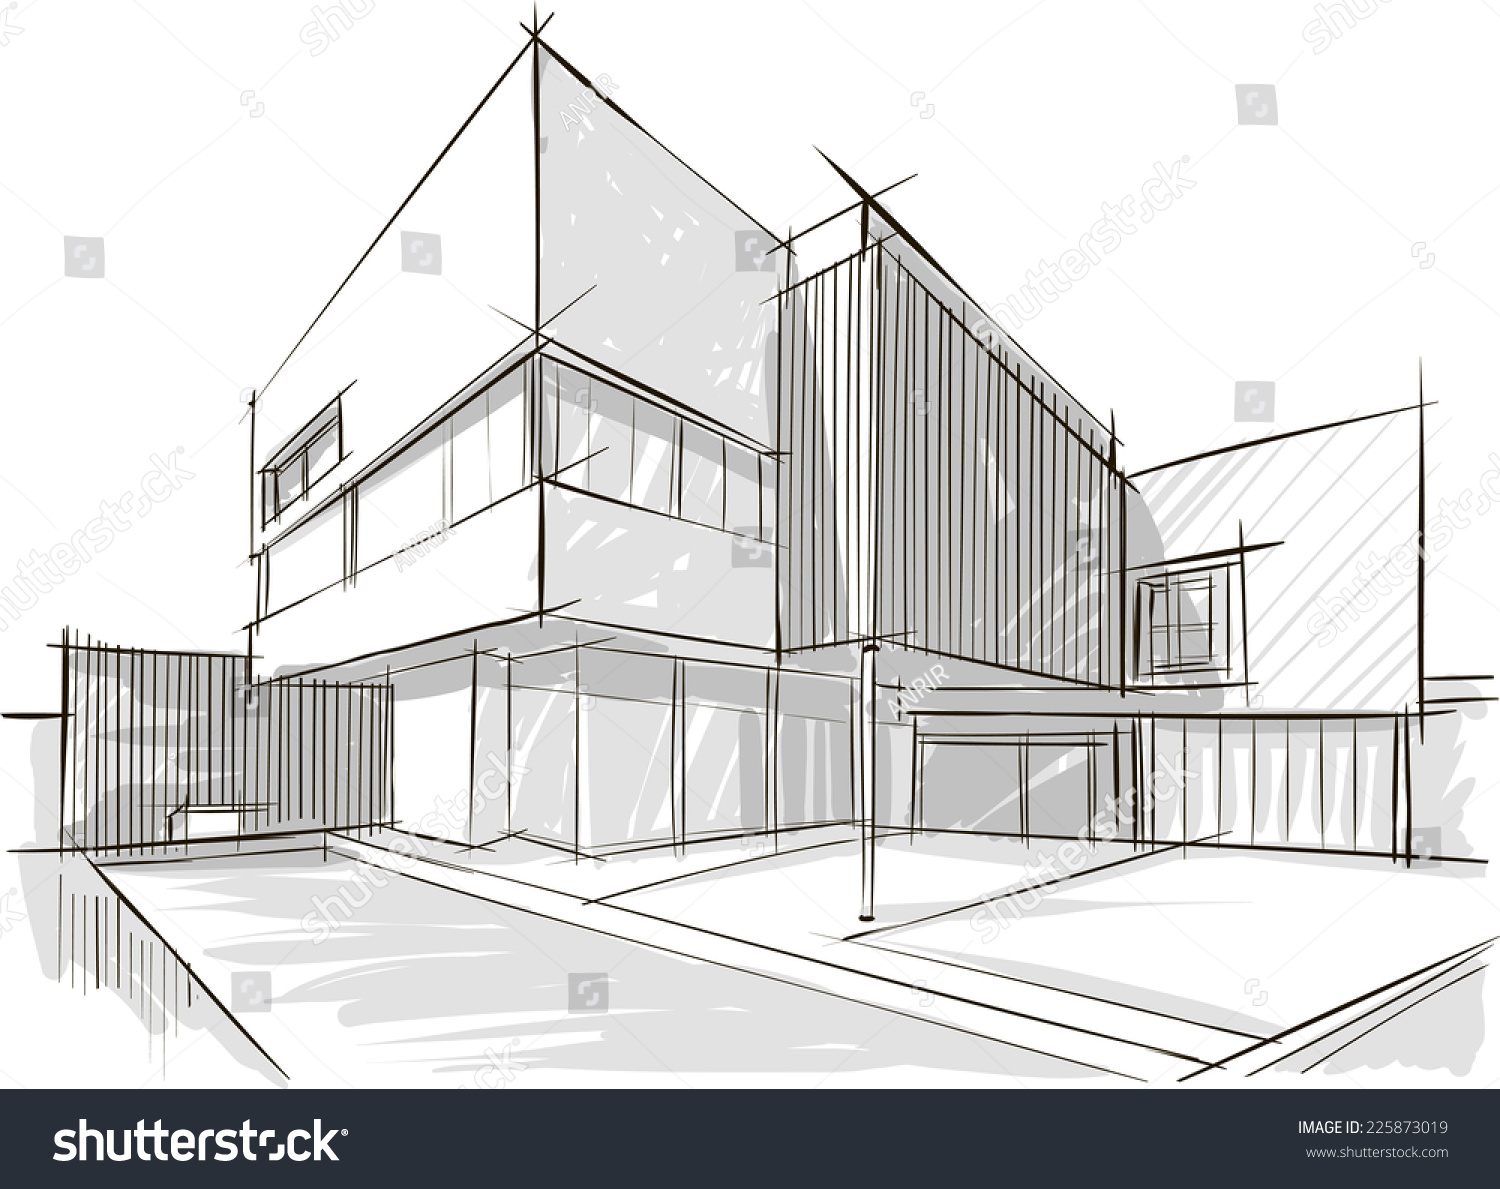 Online image photo editor shutterstock editor for Architectural drawings online